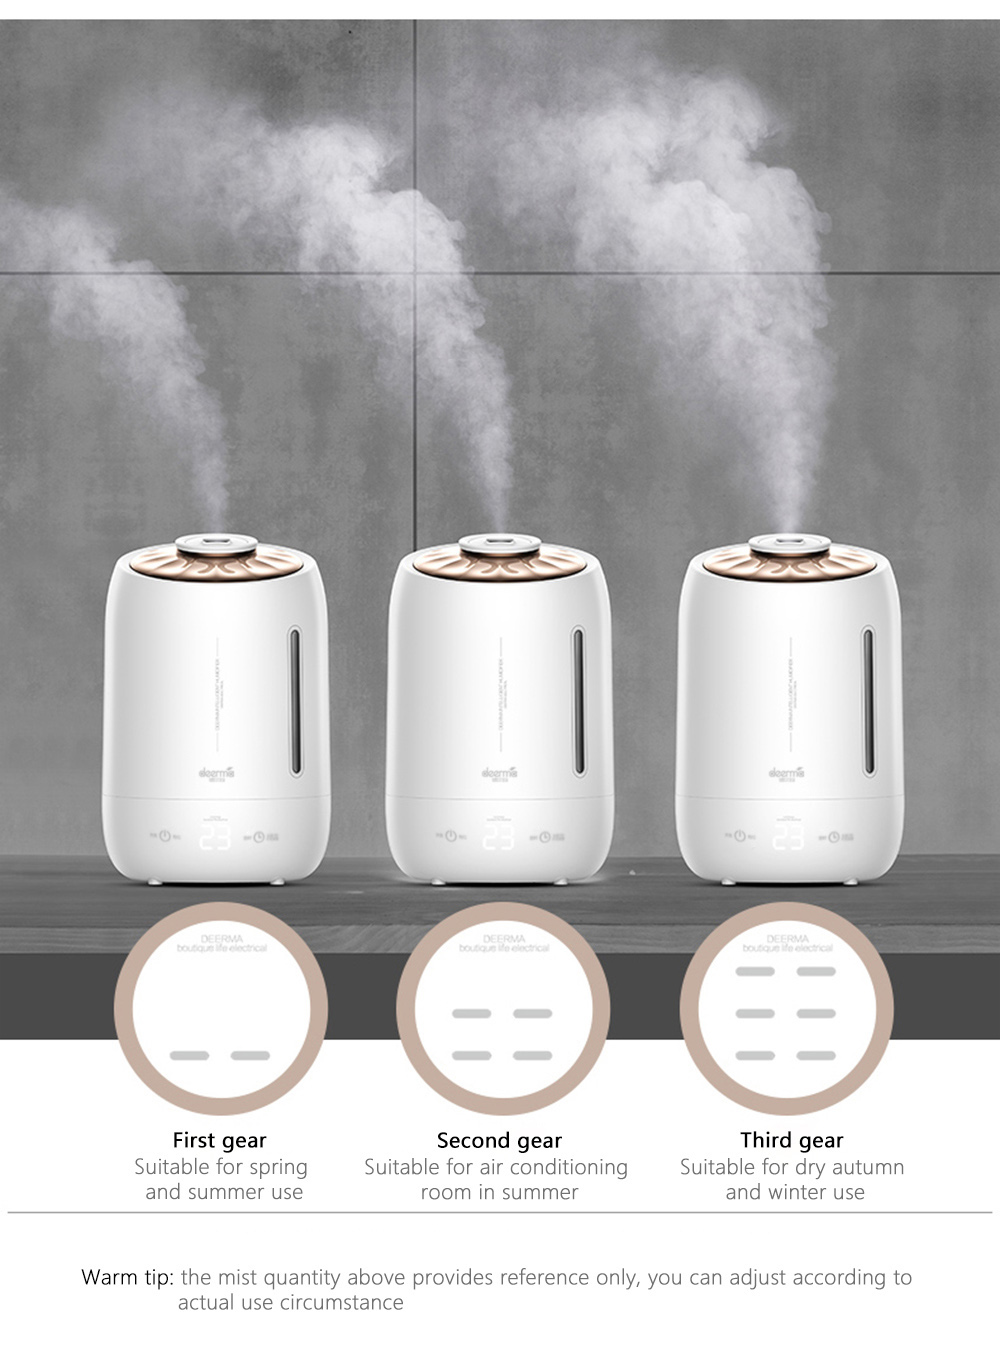 DEERMA DEM - F600 Household Humidifier Air Purifying Mist Maker- White Chinese Plug (2-pin)